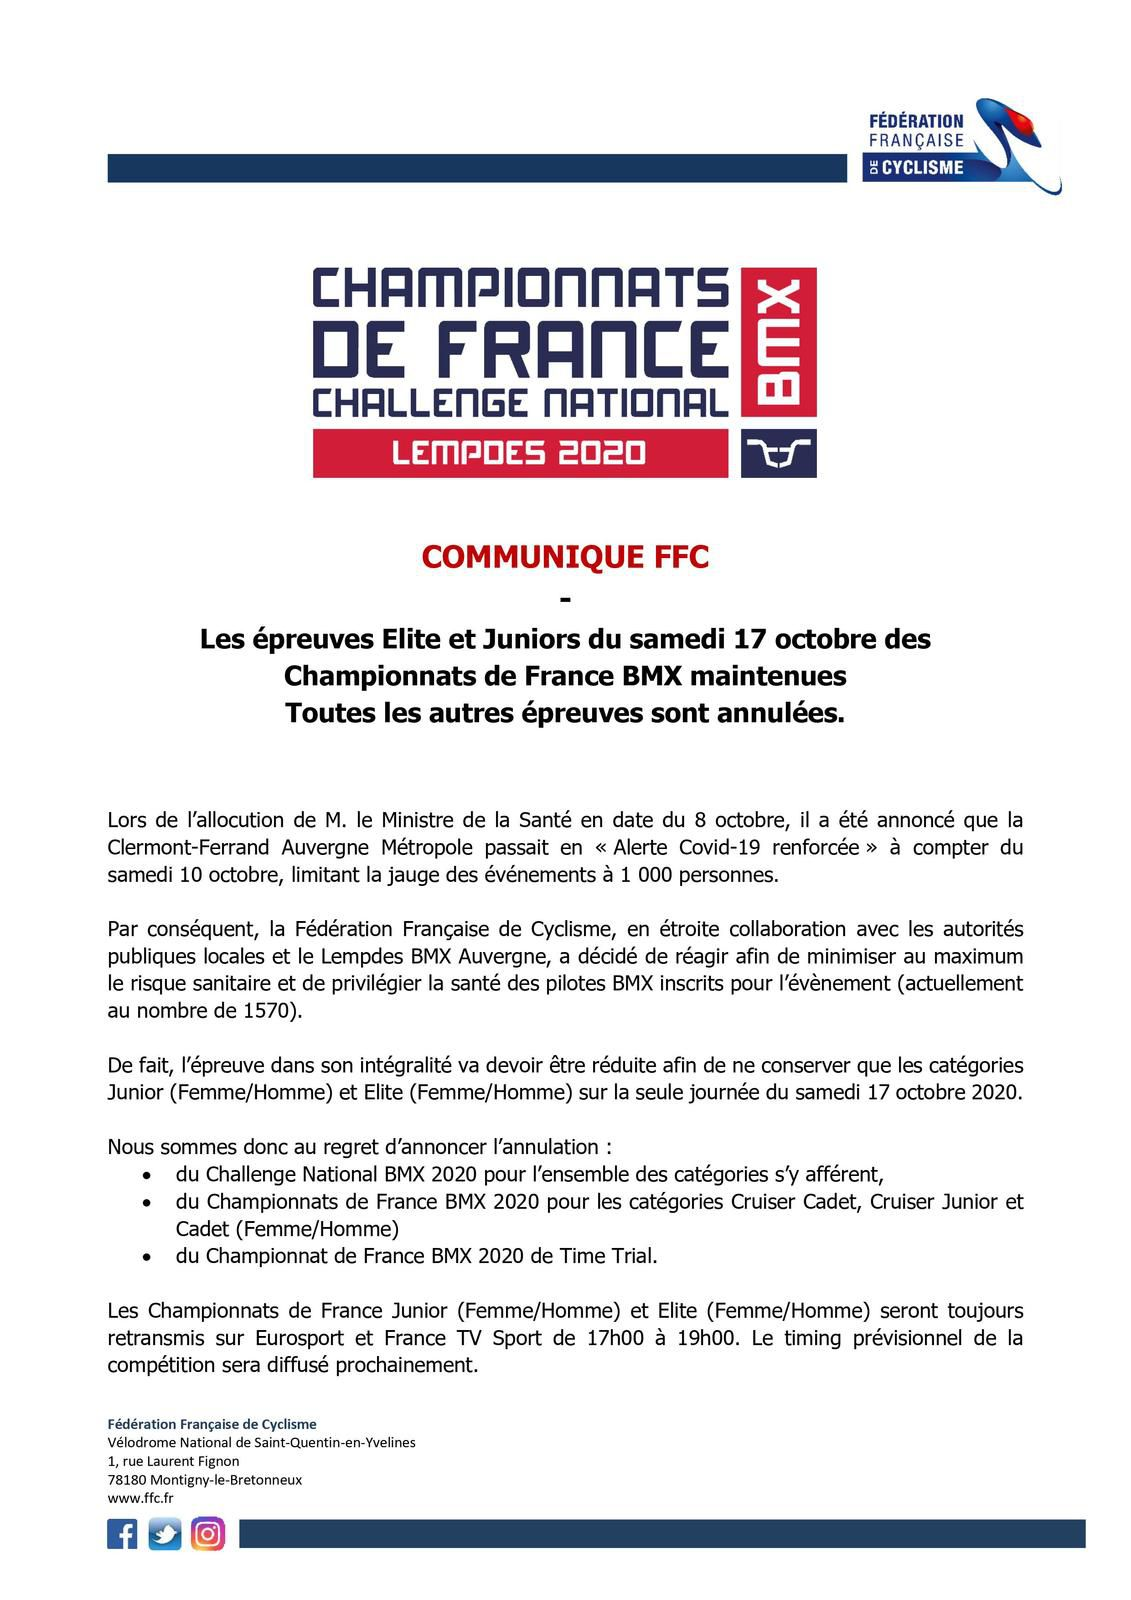 Inscrits : championnat de France à Lempdes. Attention modifications !